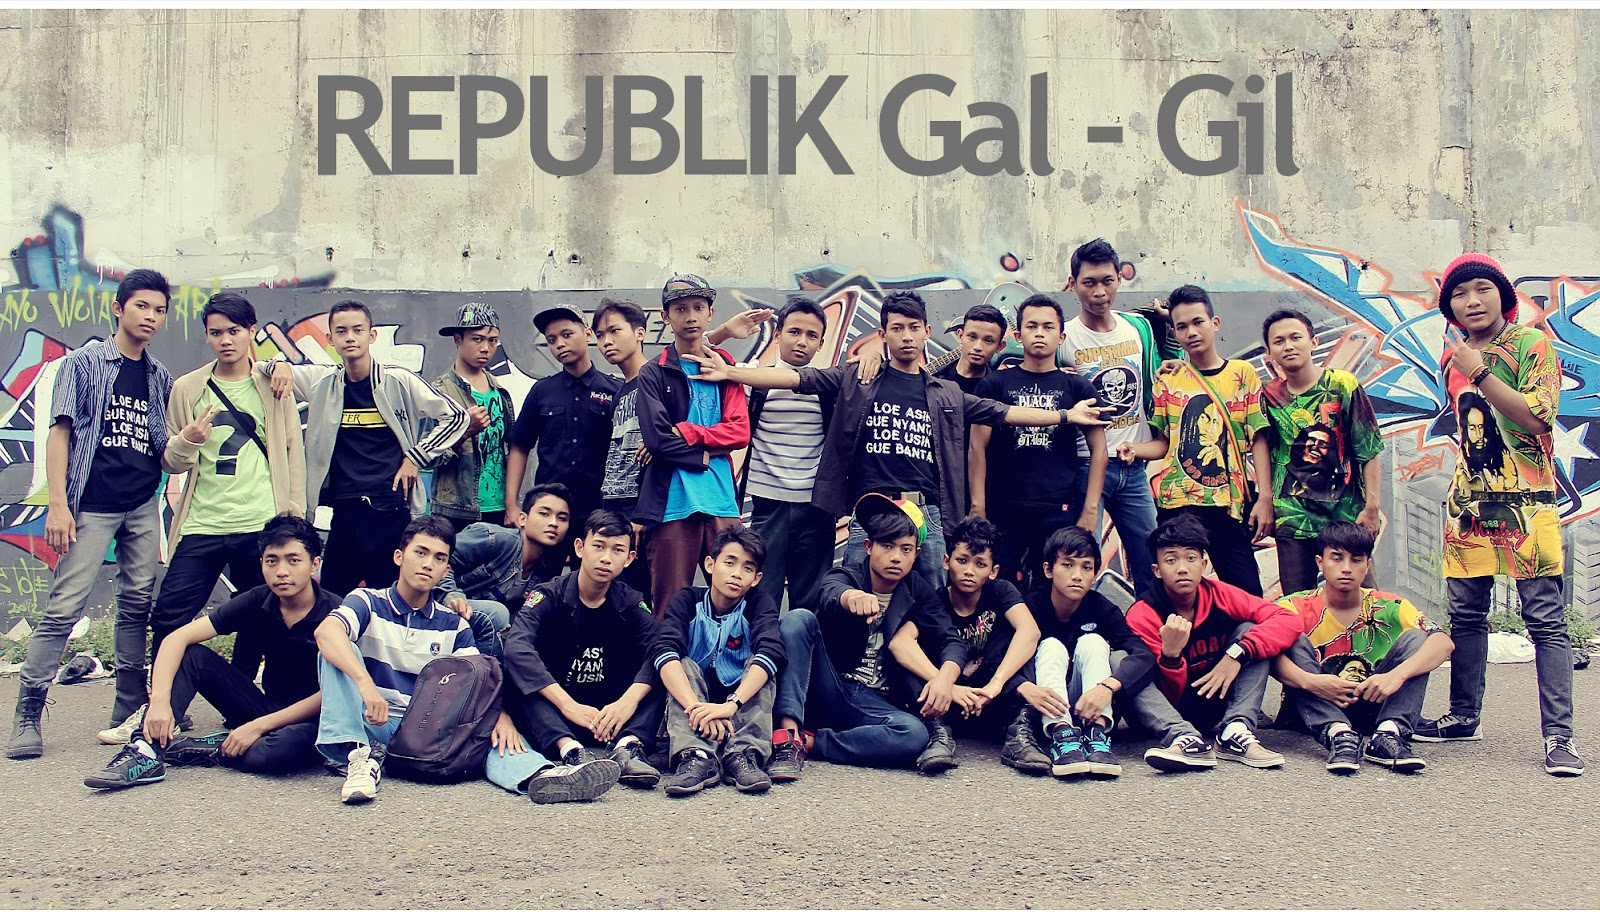 Republik Gal Gil